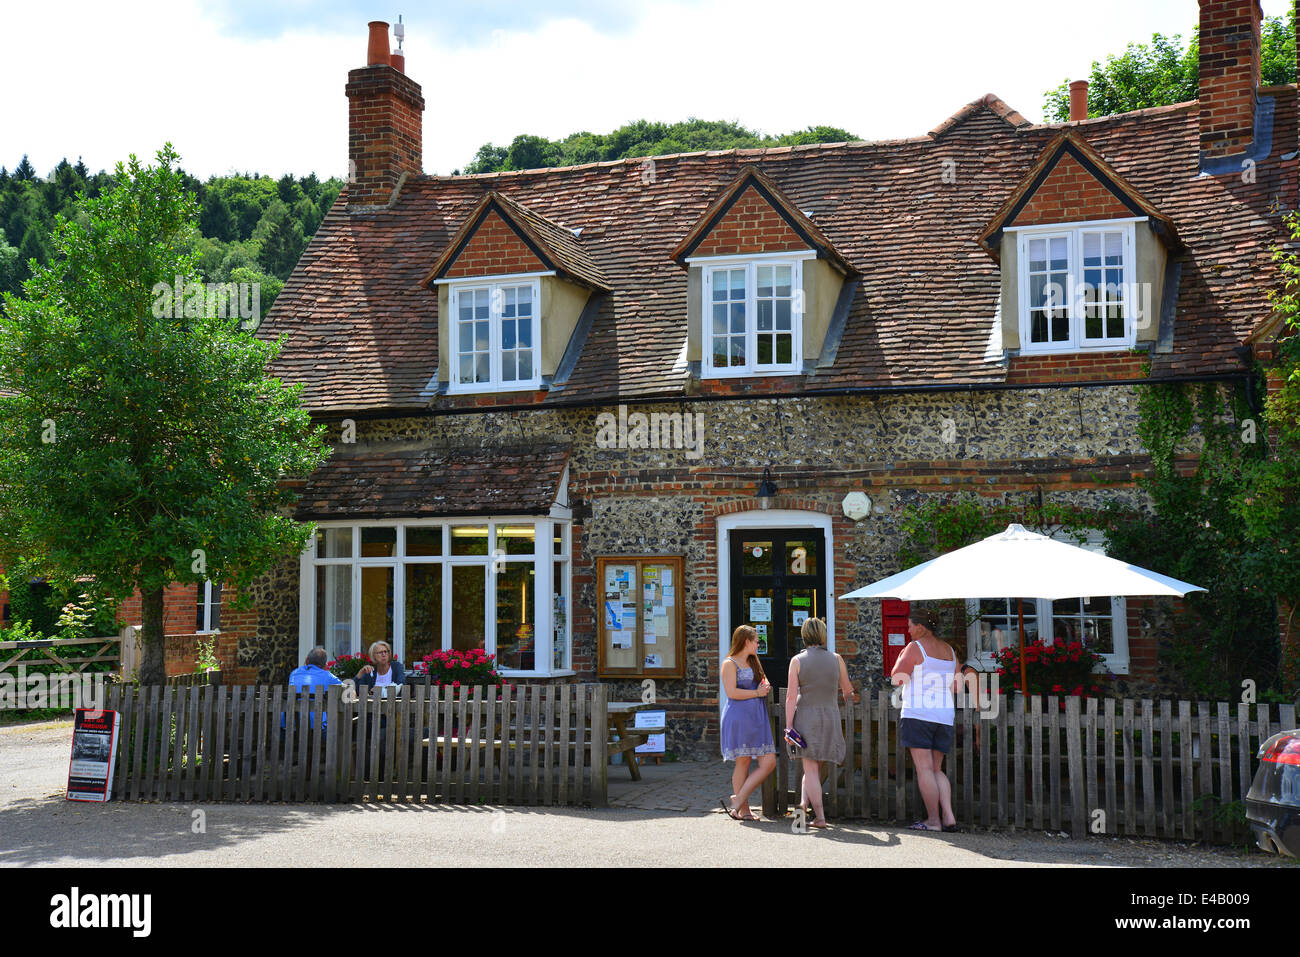 Hambleden Village Store (Old Post Office), Pheasant's Hill Frieth, Hambleden, Buckinghamshire, England, United - Stock Image